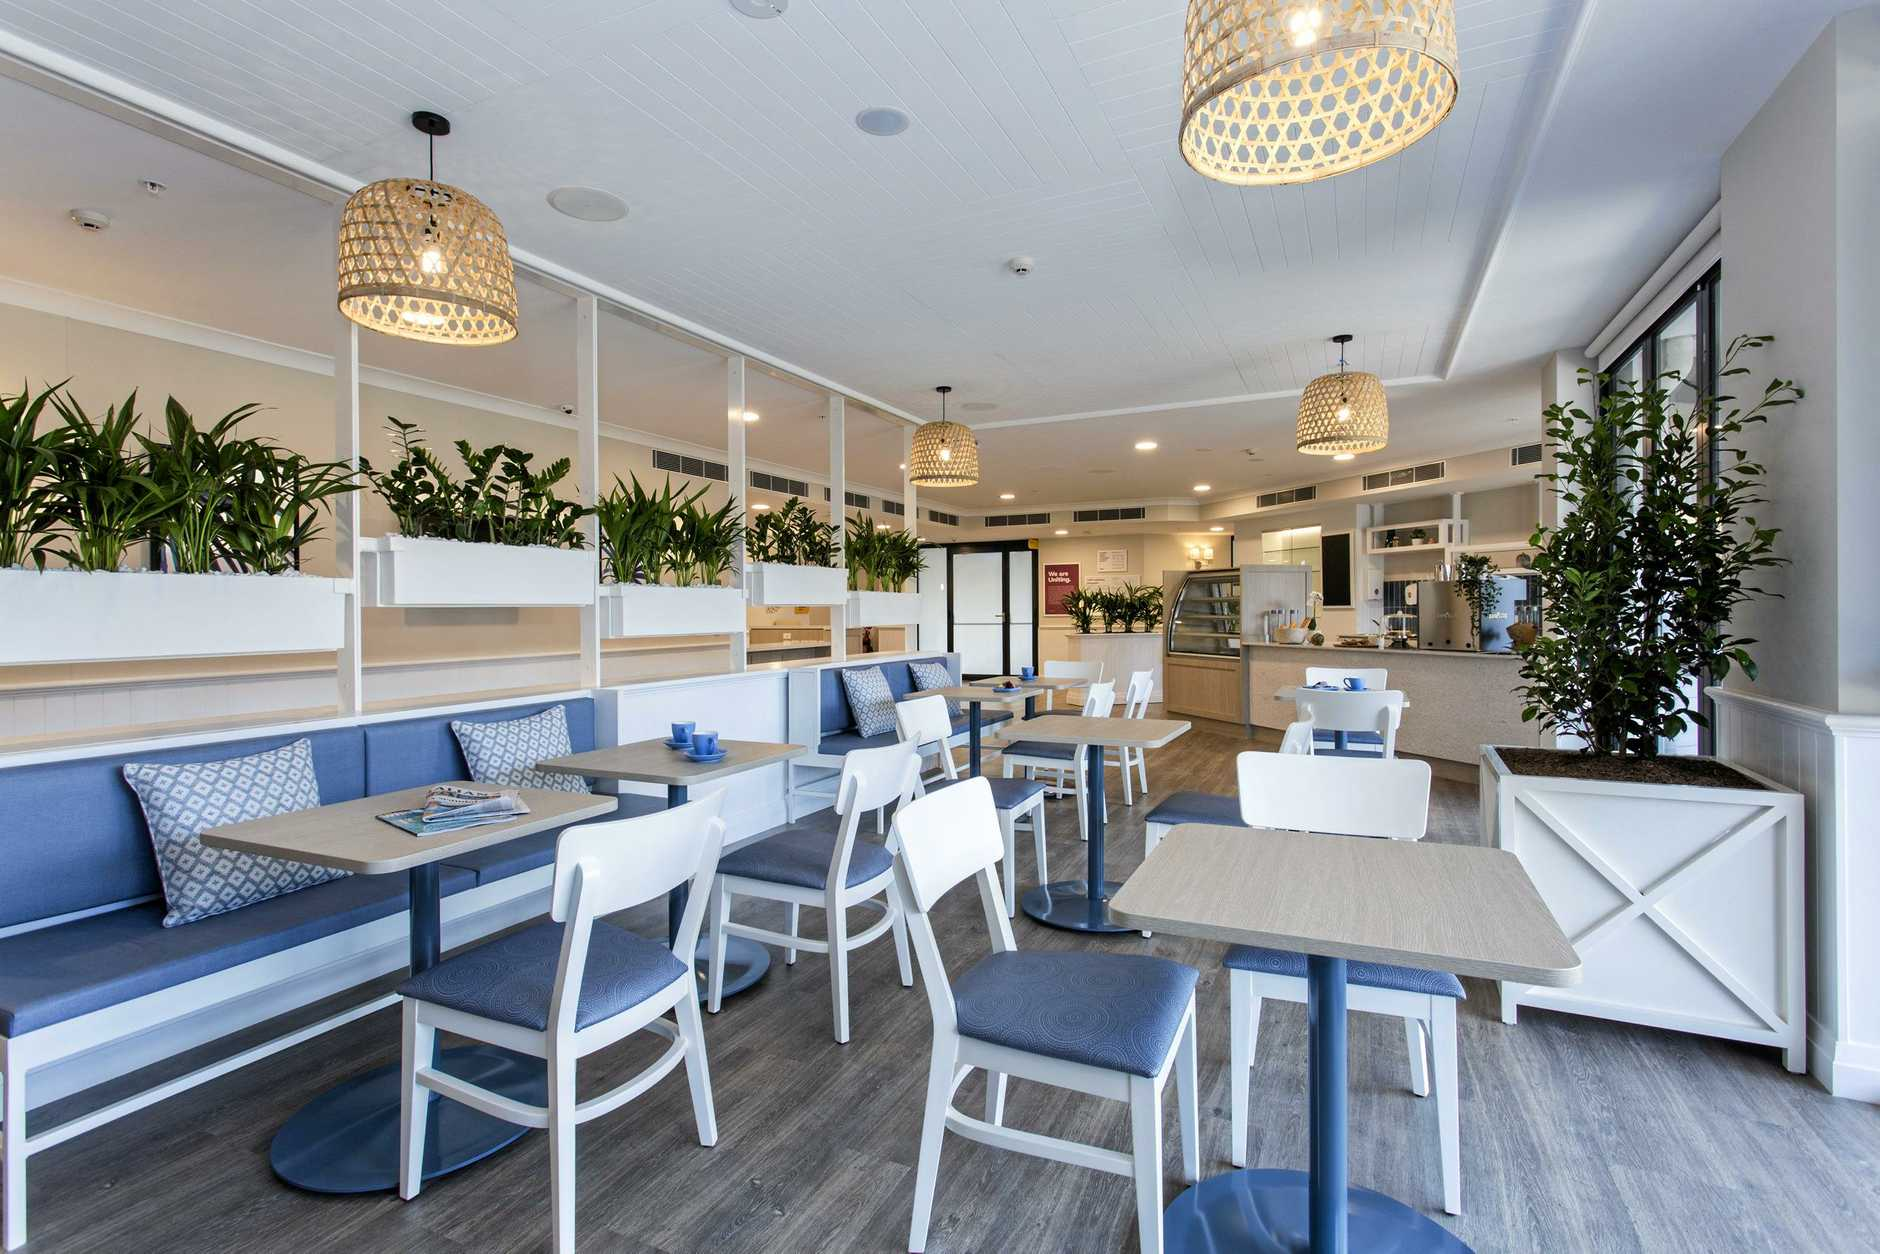 Uniting Care Gerringong Cafe by Meli Studio.